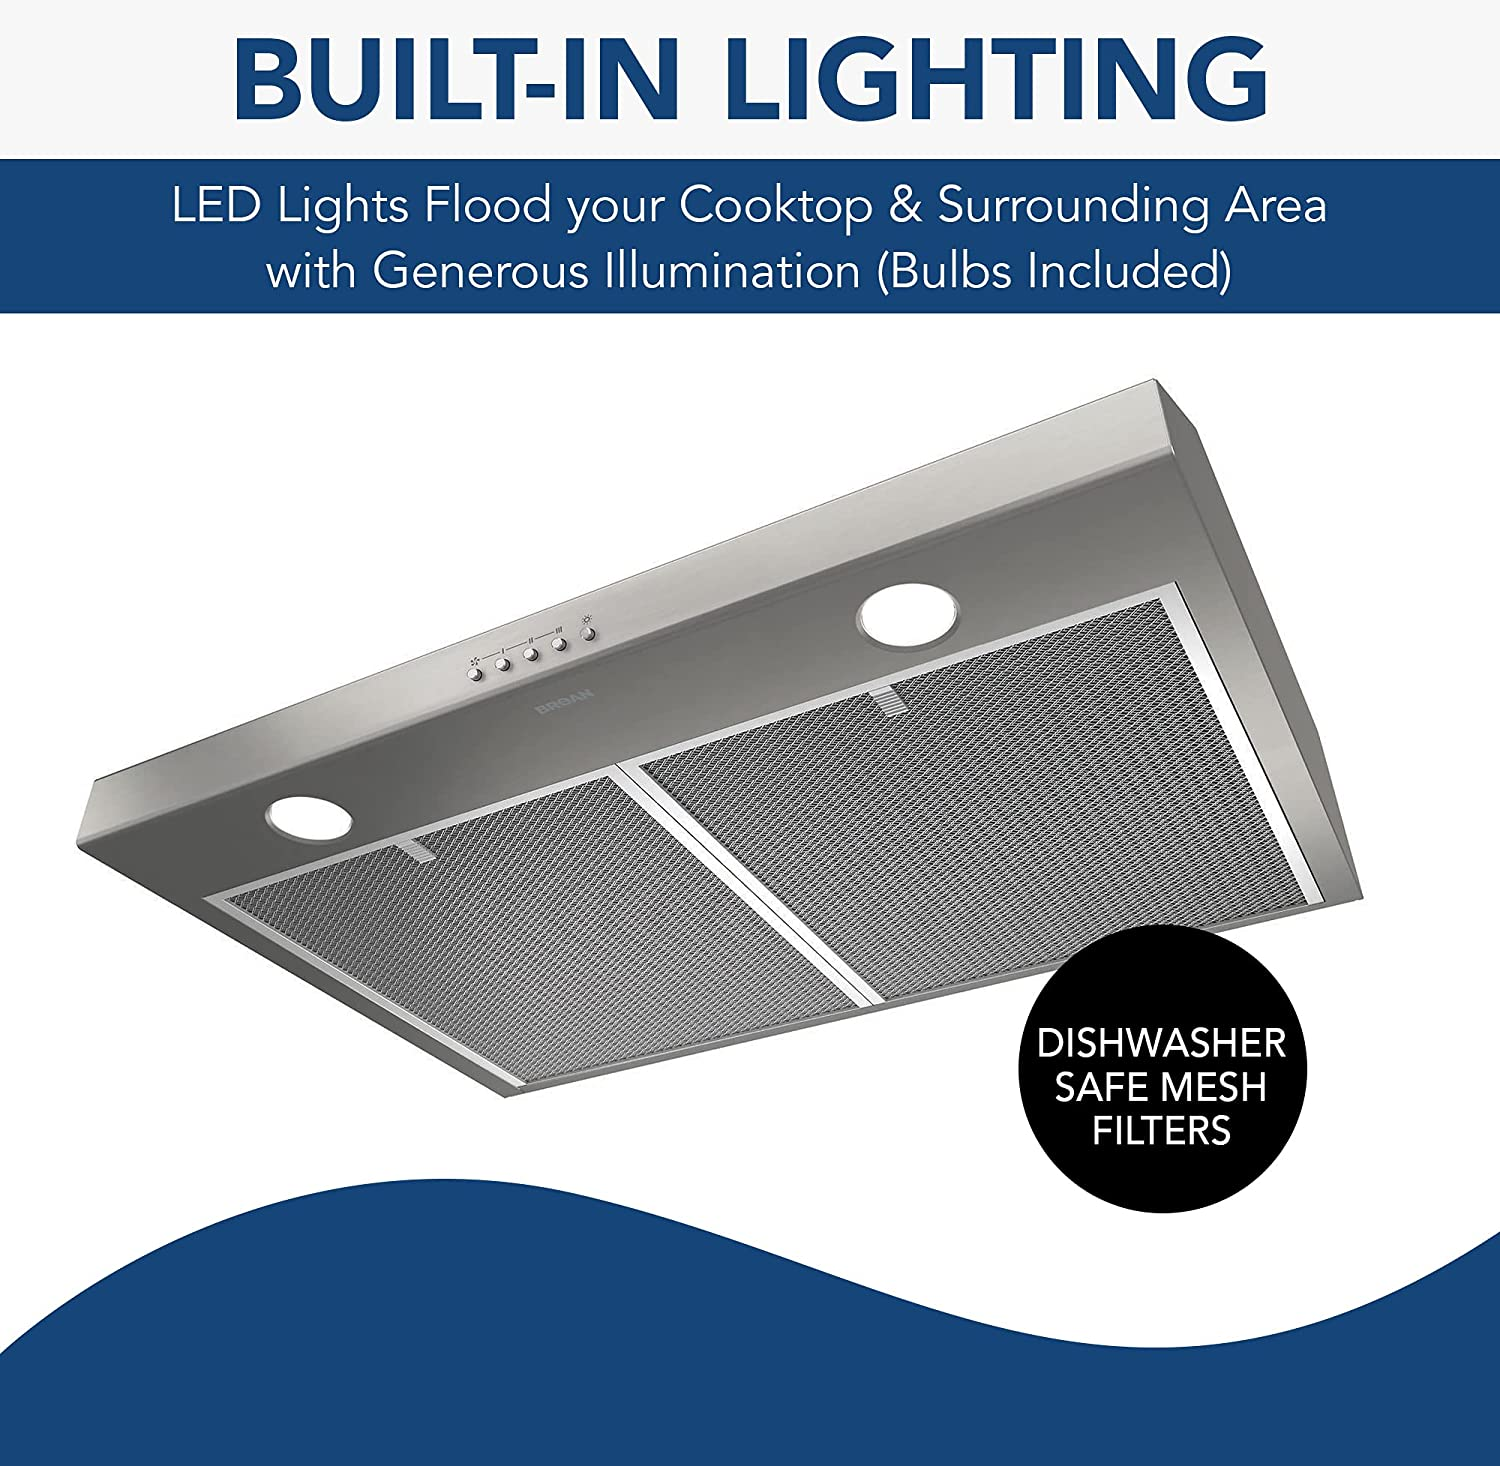 BROAN NuTone BCSQ130SS Three-Speed Glacier Under-Cabinet Range Hood with LED Lights ADA Capable, 1.5 Sones, 375 Max Blower CFM, 30, Stainless Steel